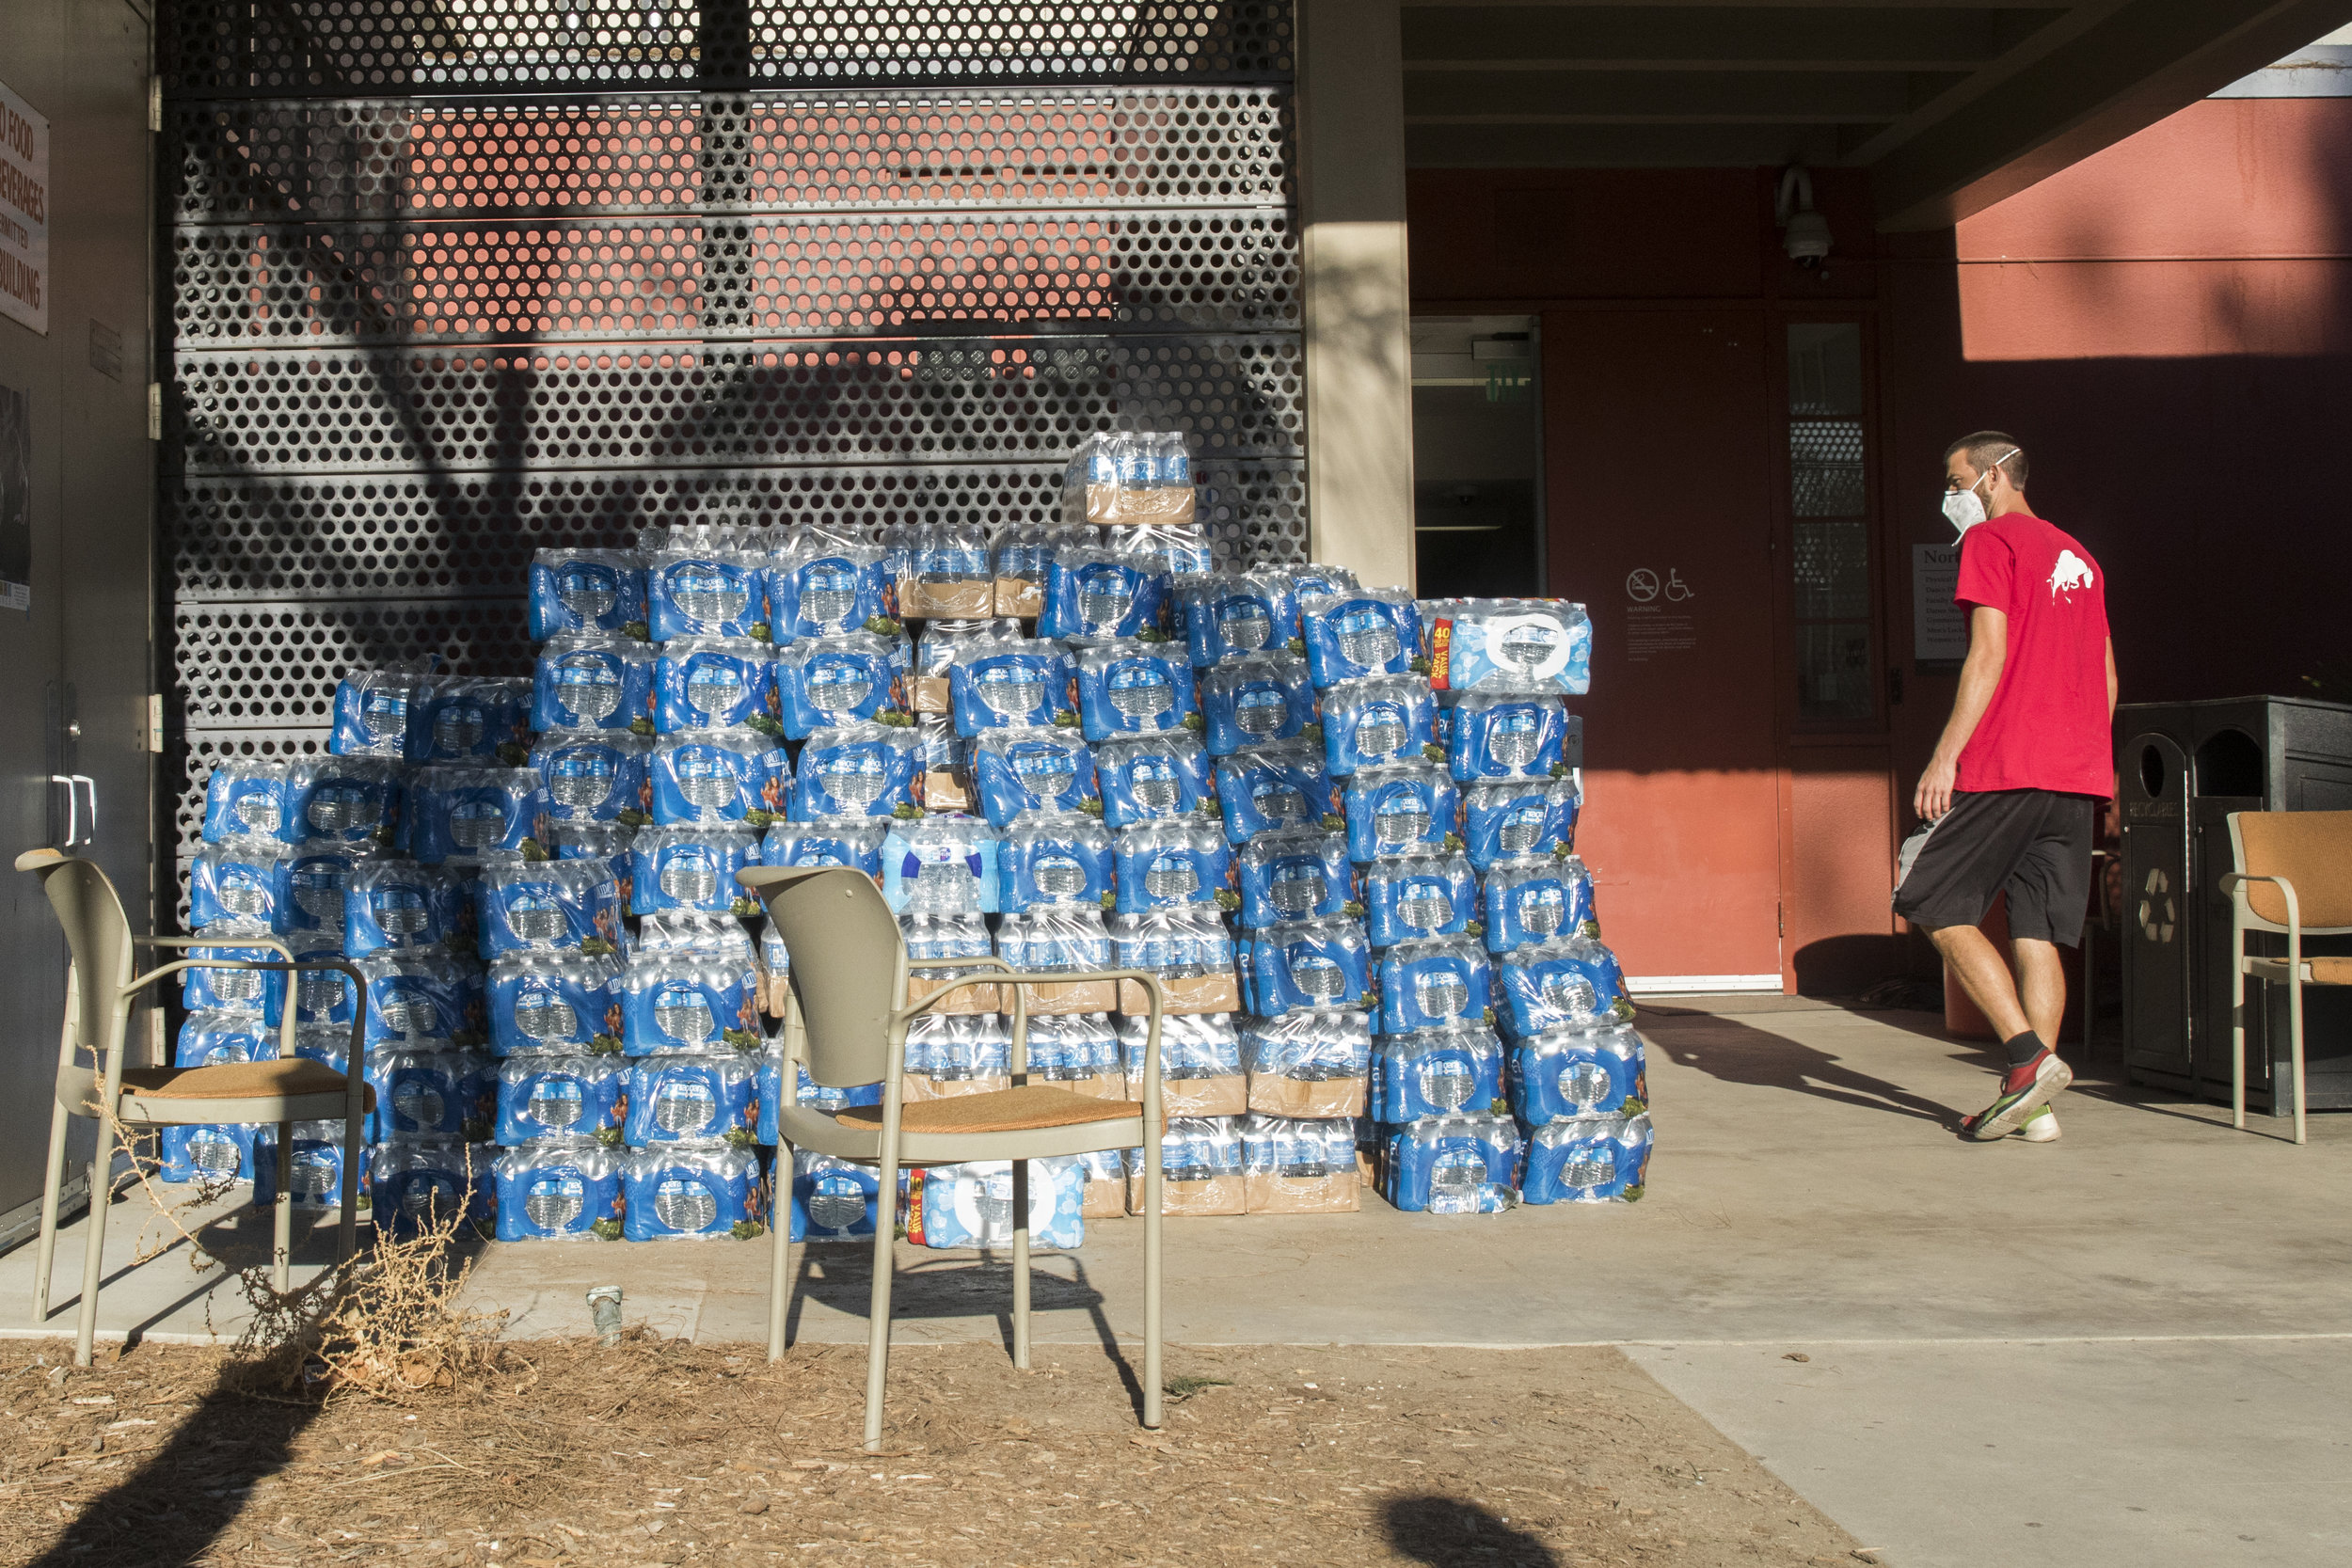 A volunteer walks by water bottles donated by Juan Mutaz (not pictured), a store manager for a Home Depot located in West Hills, California. The water bottles are readily available for any evacuee of the Woolsey Fire who have taken refuge at Pierce College in Woodland Hills, California on November 9, 2018. (Zane Meyer-Thornton/Corsair Photo)